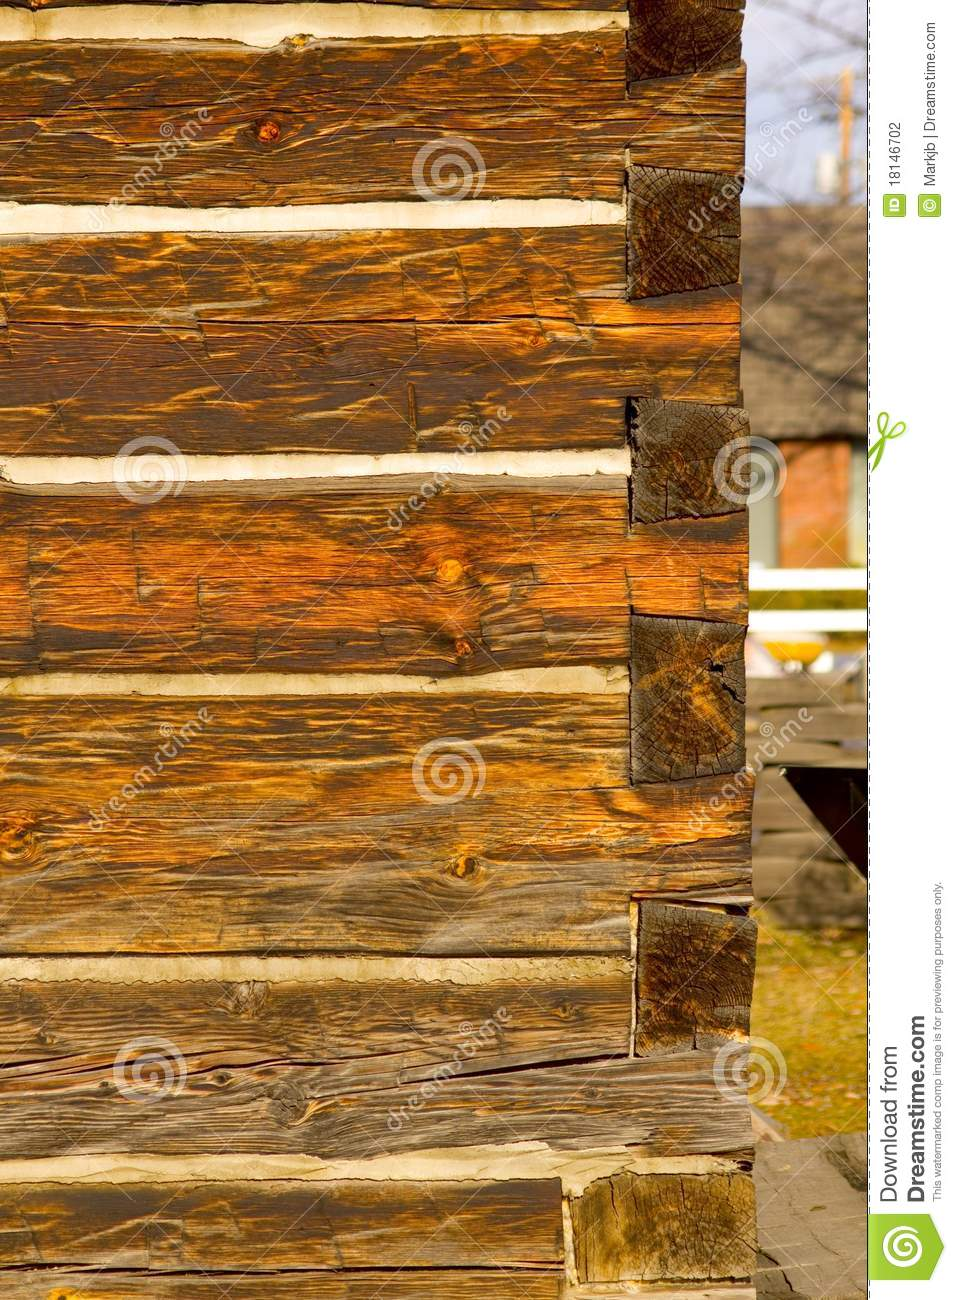 Portrait Photo Of Antique Square Log Construction Stock